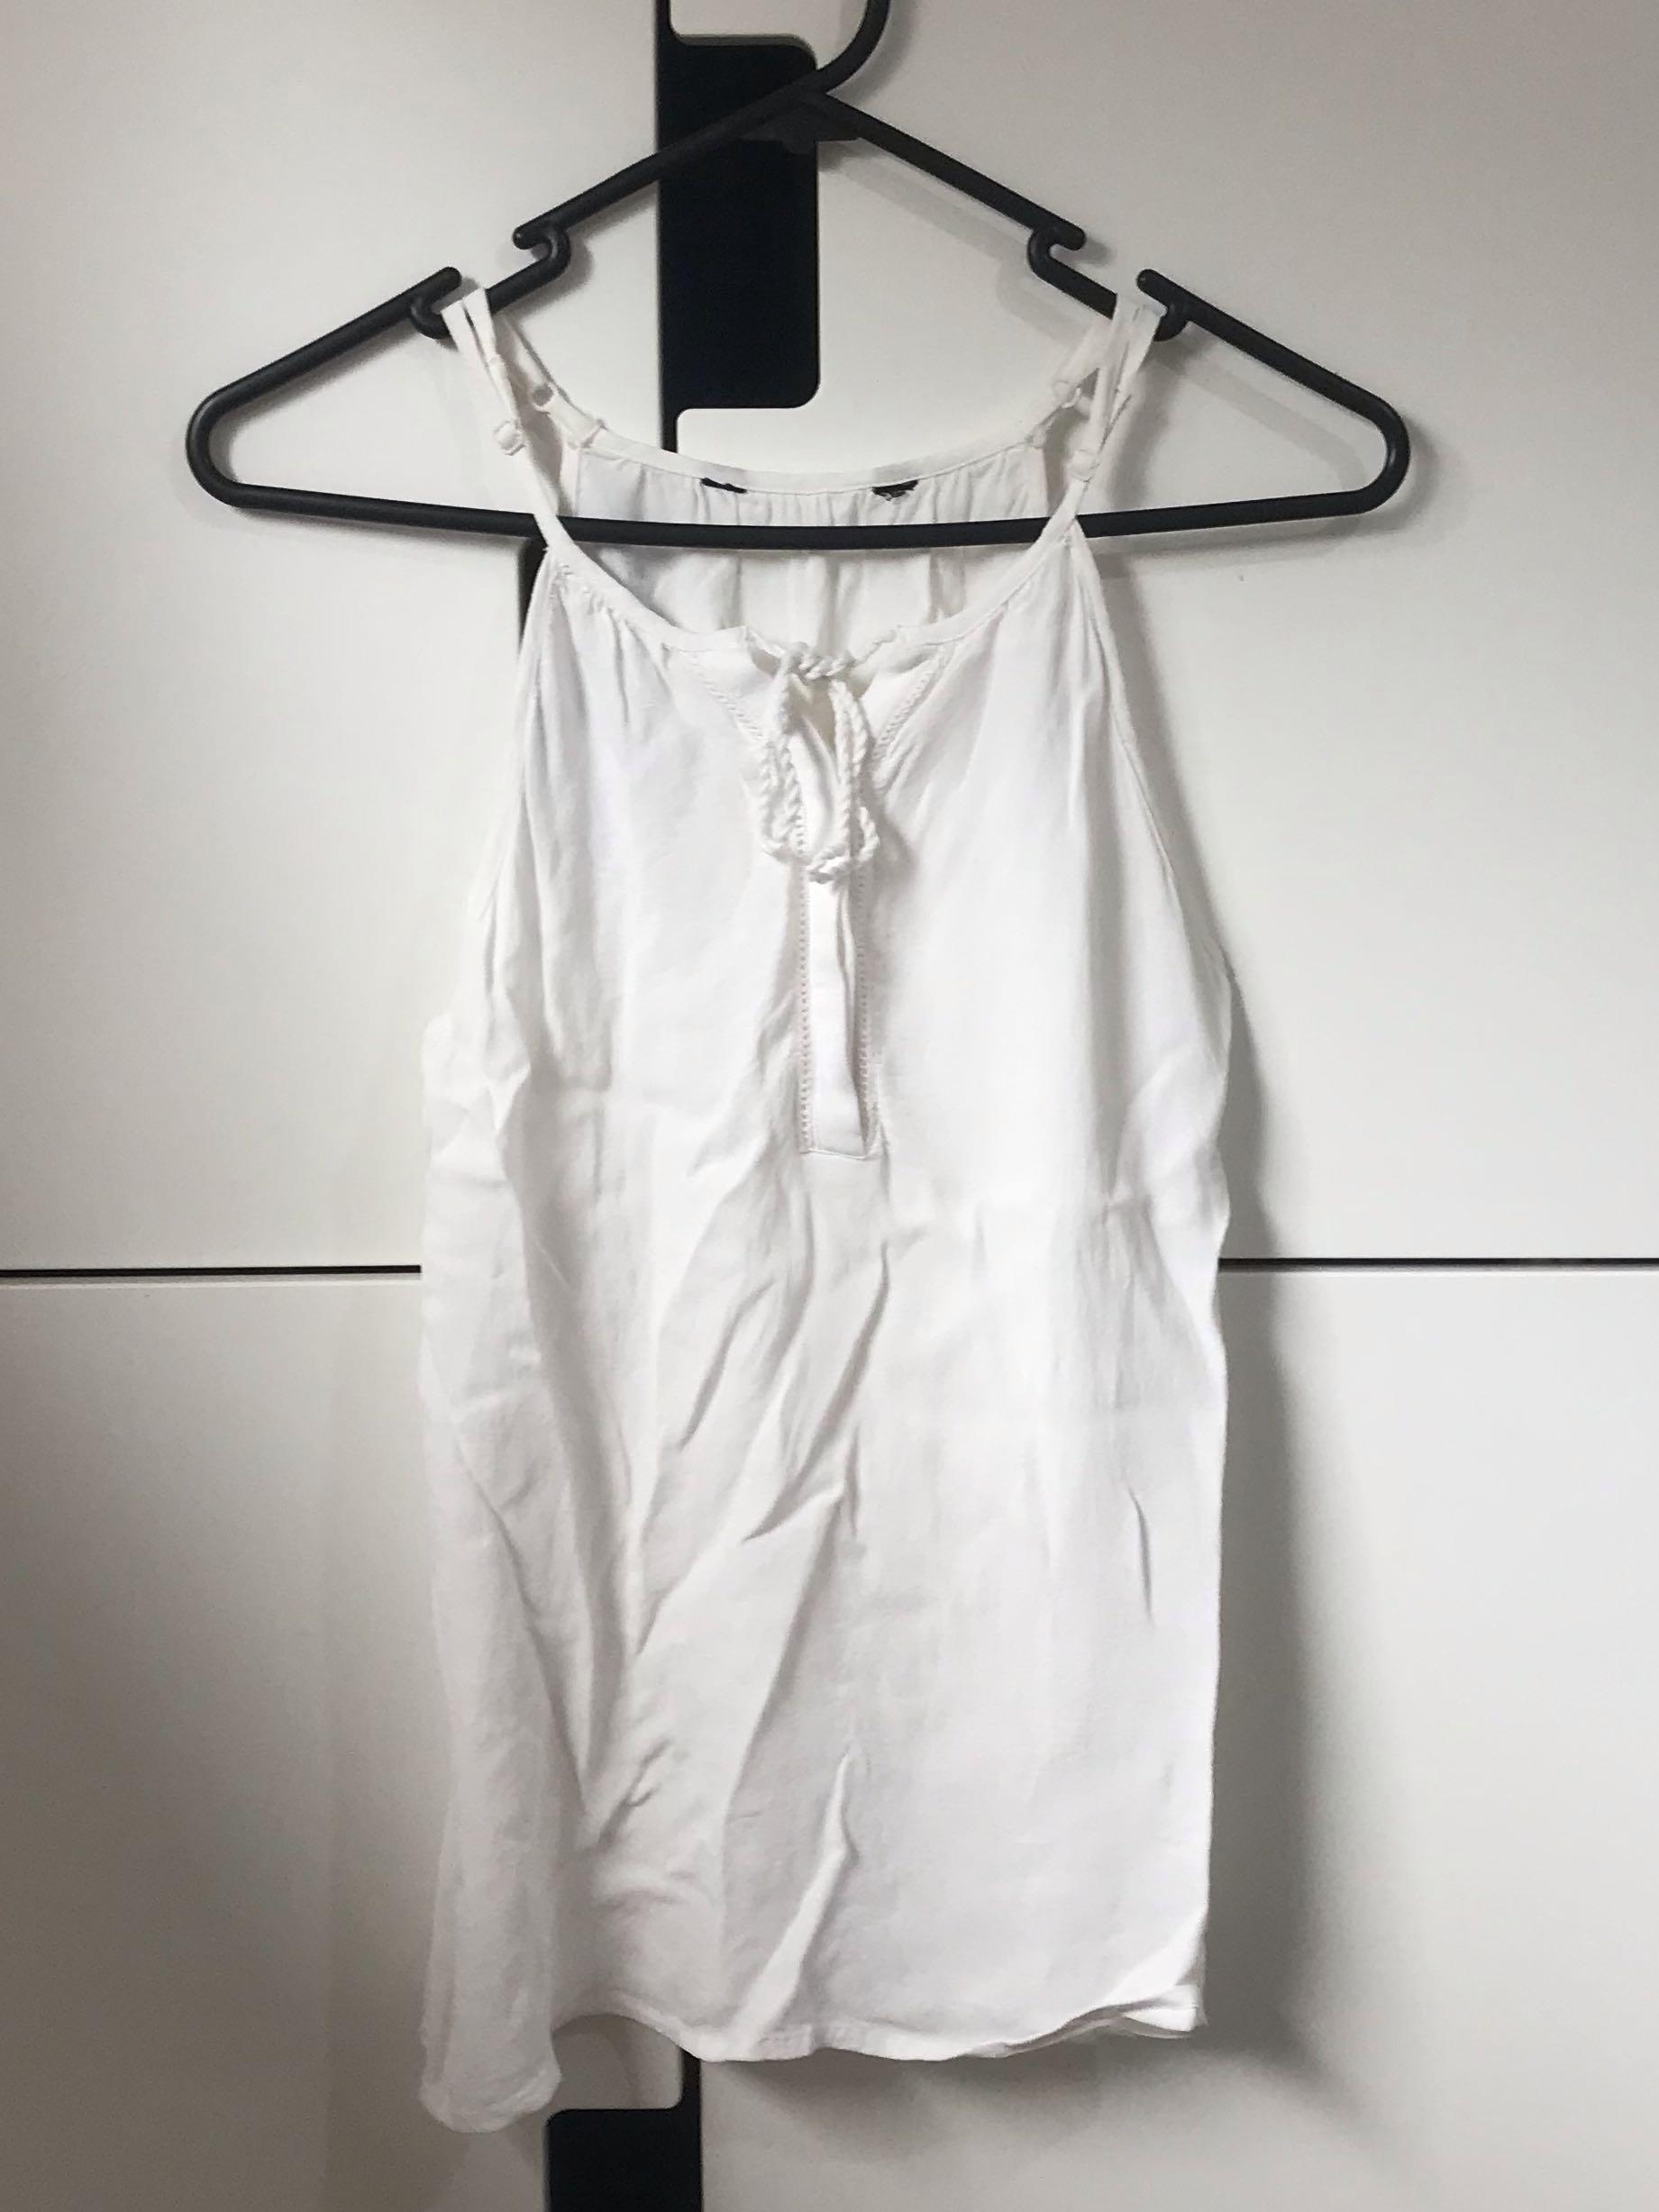 White sleeveless summer top with tassel details at the front